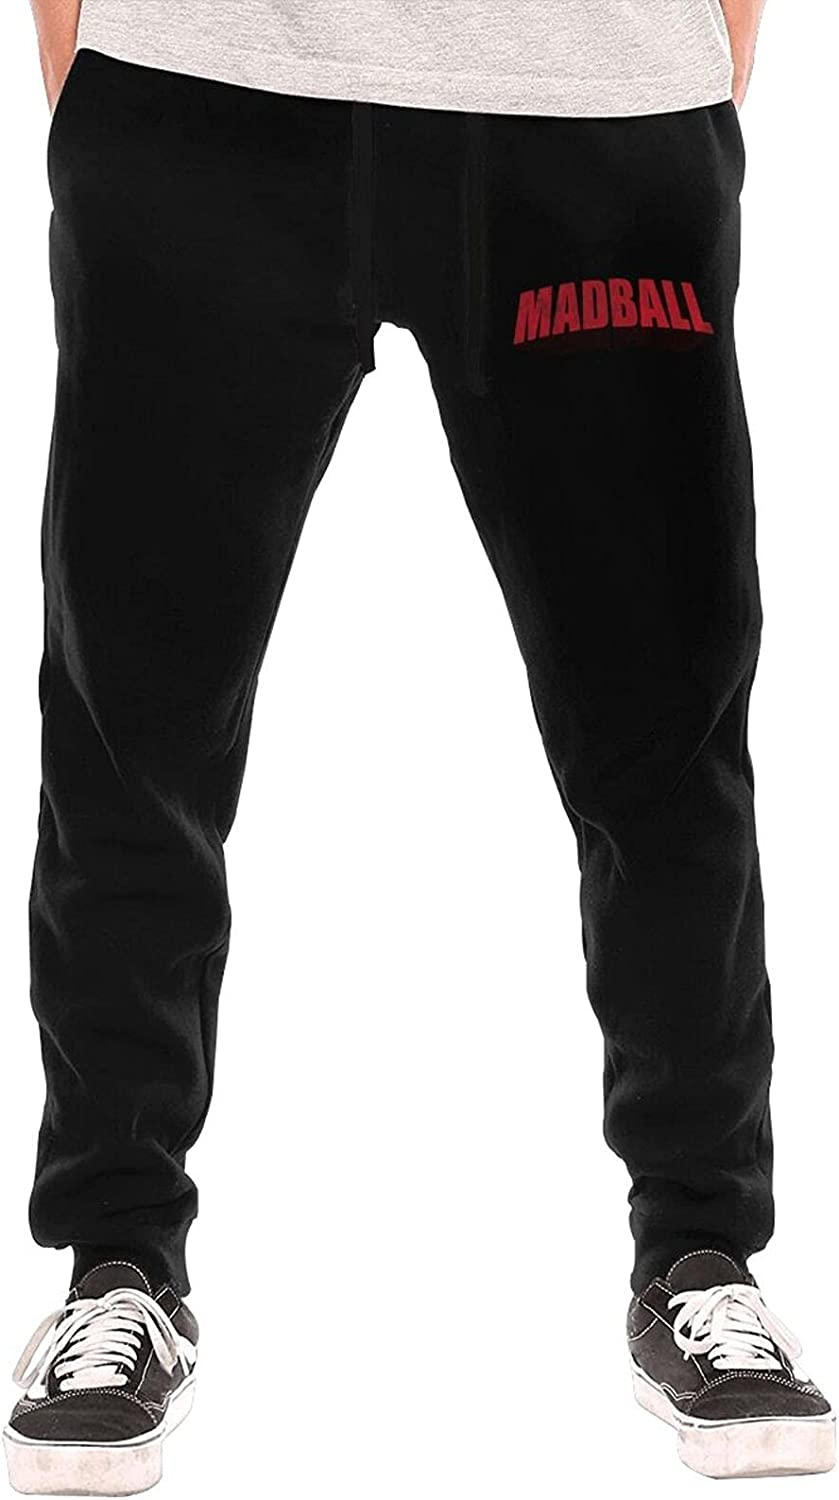 Madball Logo NEW before selling Man's Sweatpants Fashion Cheap SALE Start Long Pant with Po Trousers